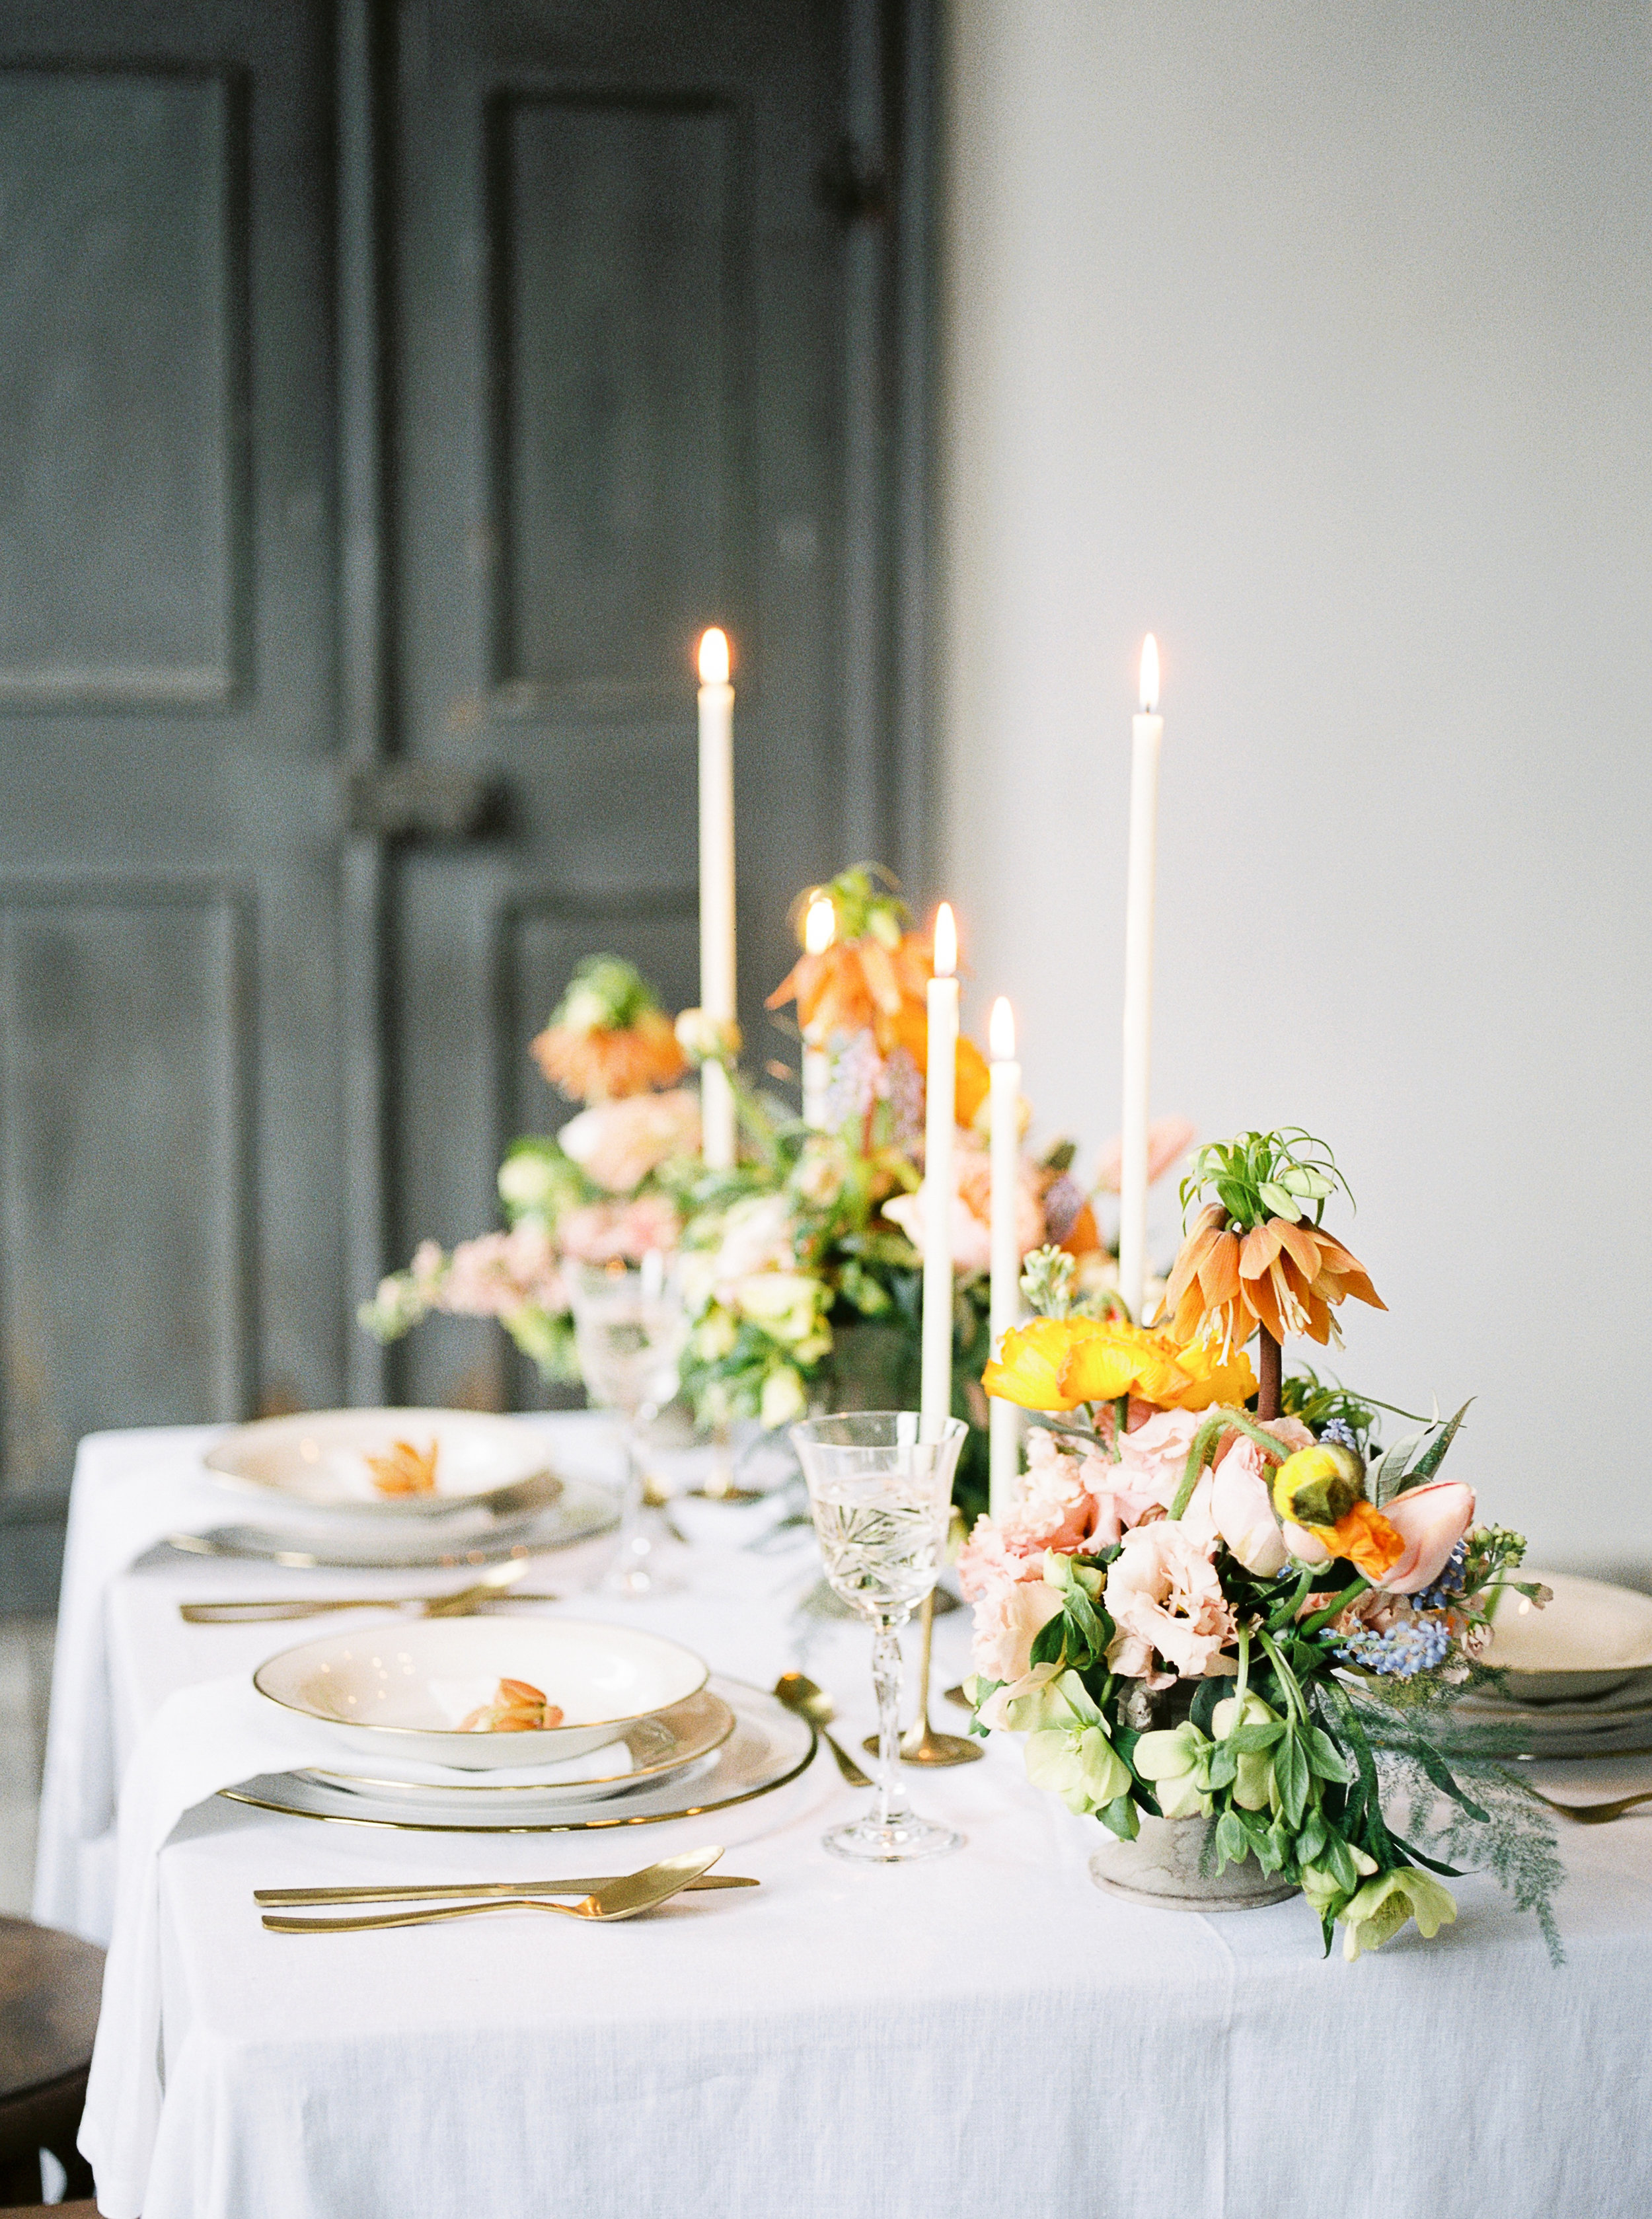 Elegant Nurnberg Germany Wedding Inspiration by Tanja Kibogo - fine art film destination wedding photographer4.JPG